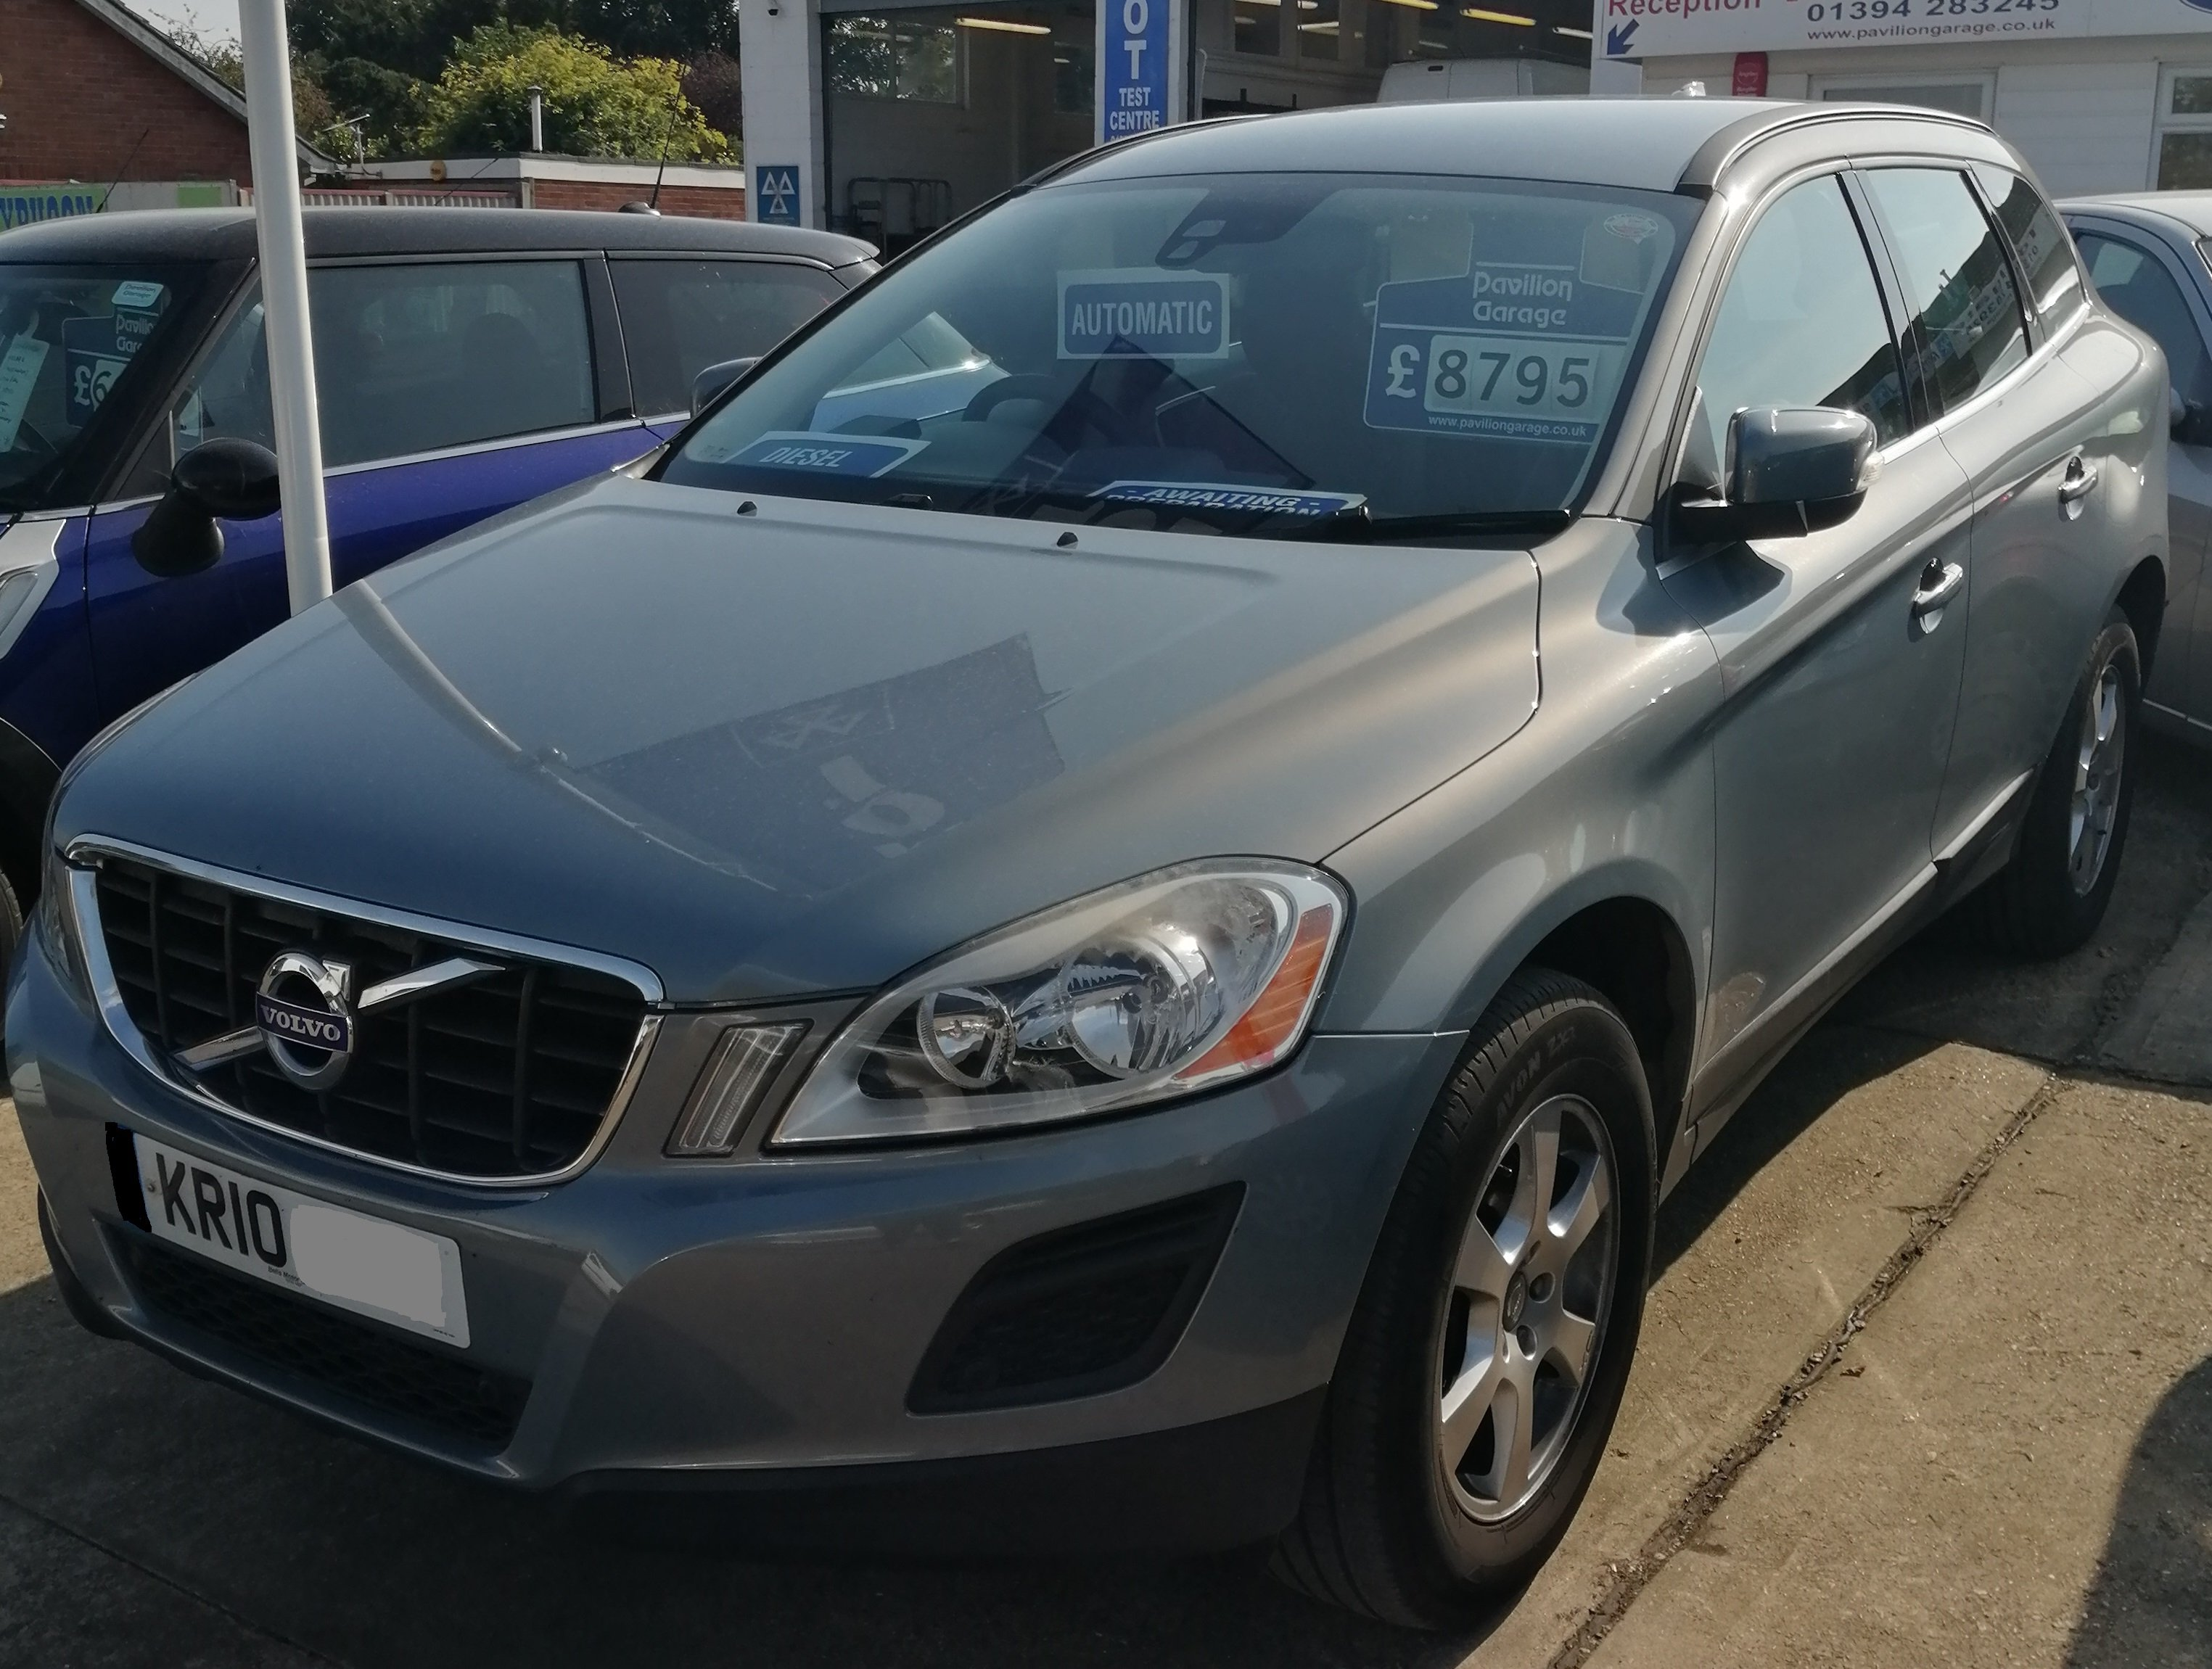 Volvo XC60 SE AWD D5 Auto Automatic 2400cc - Diesel 2010 / 10 95,400 miles Full Service History Cam Belt Replaced Spare Key £260 per year Road Tax £8795  Awaiting Preparation